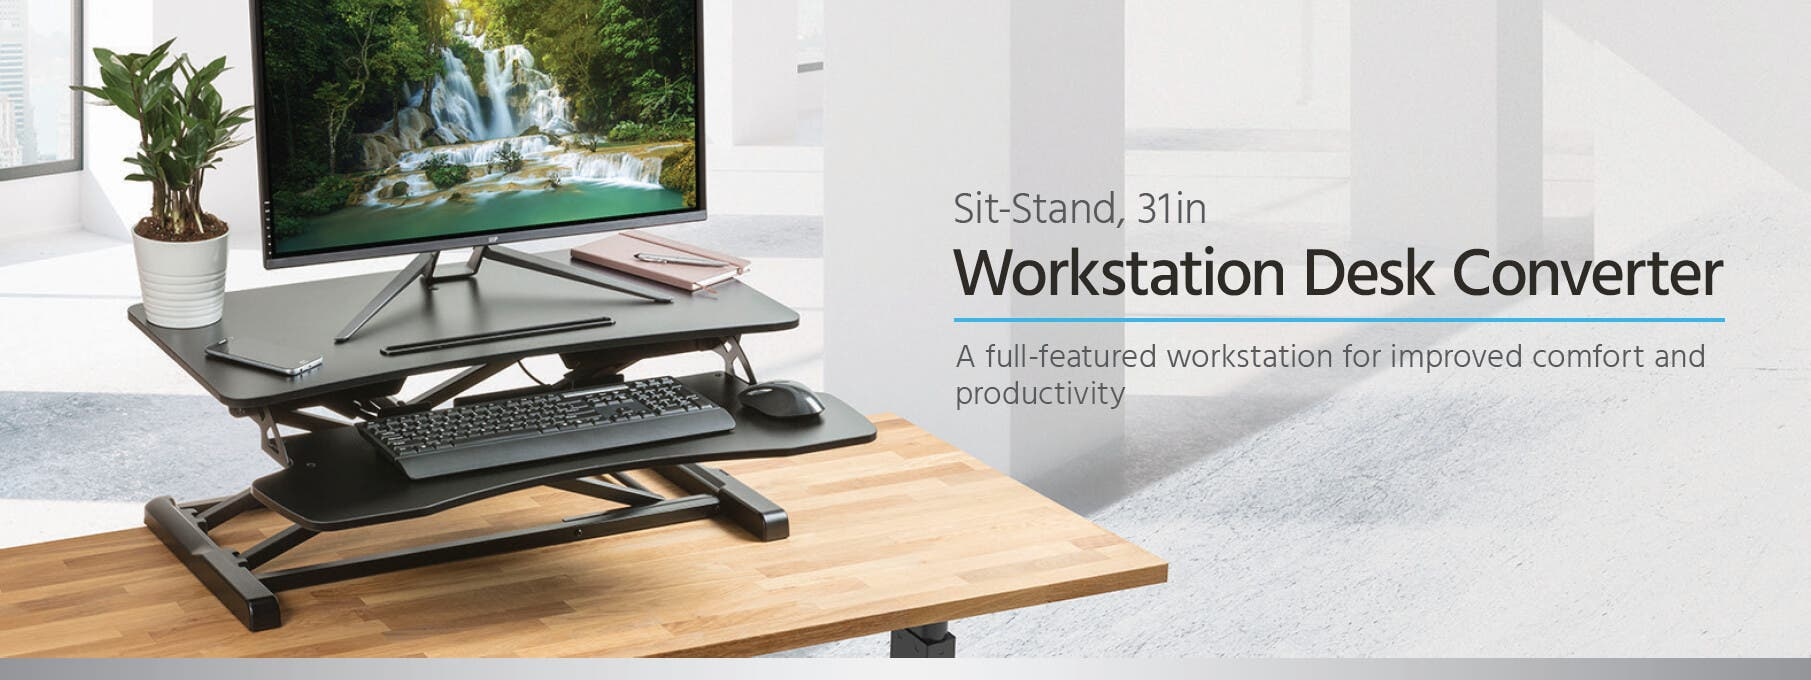 Workstream By Monoprice Sit Stand Compact Workstation Desk Converter Wiring Harness Workstations